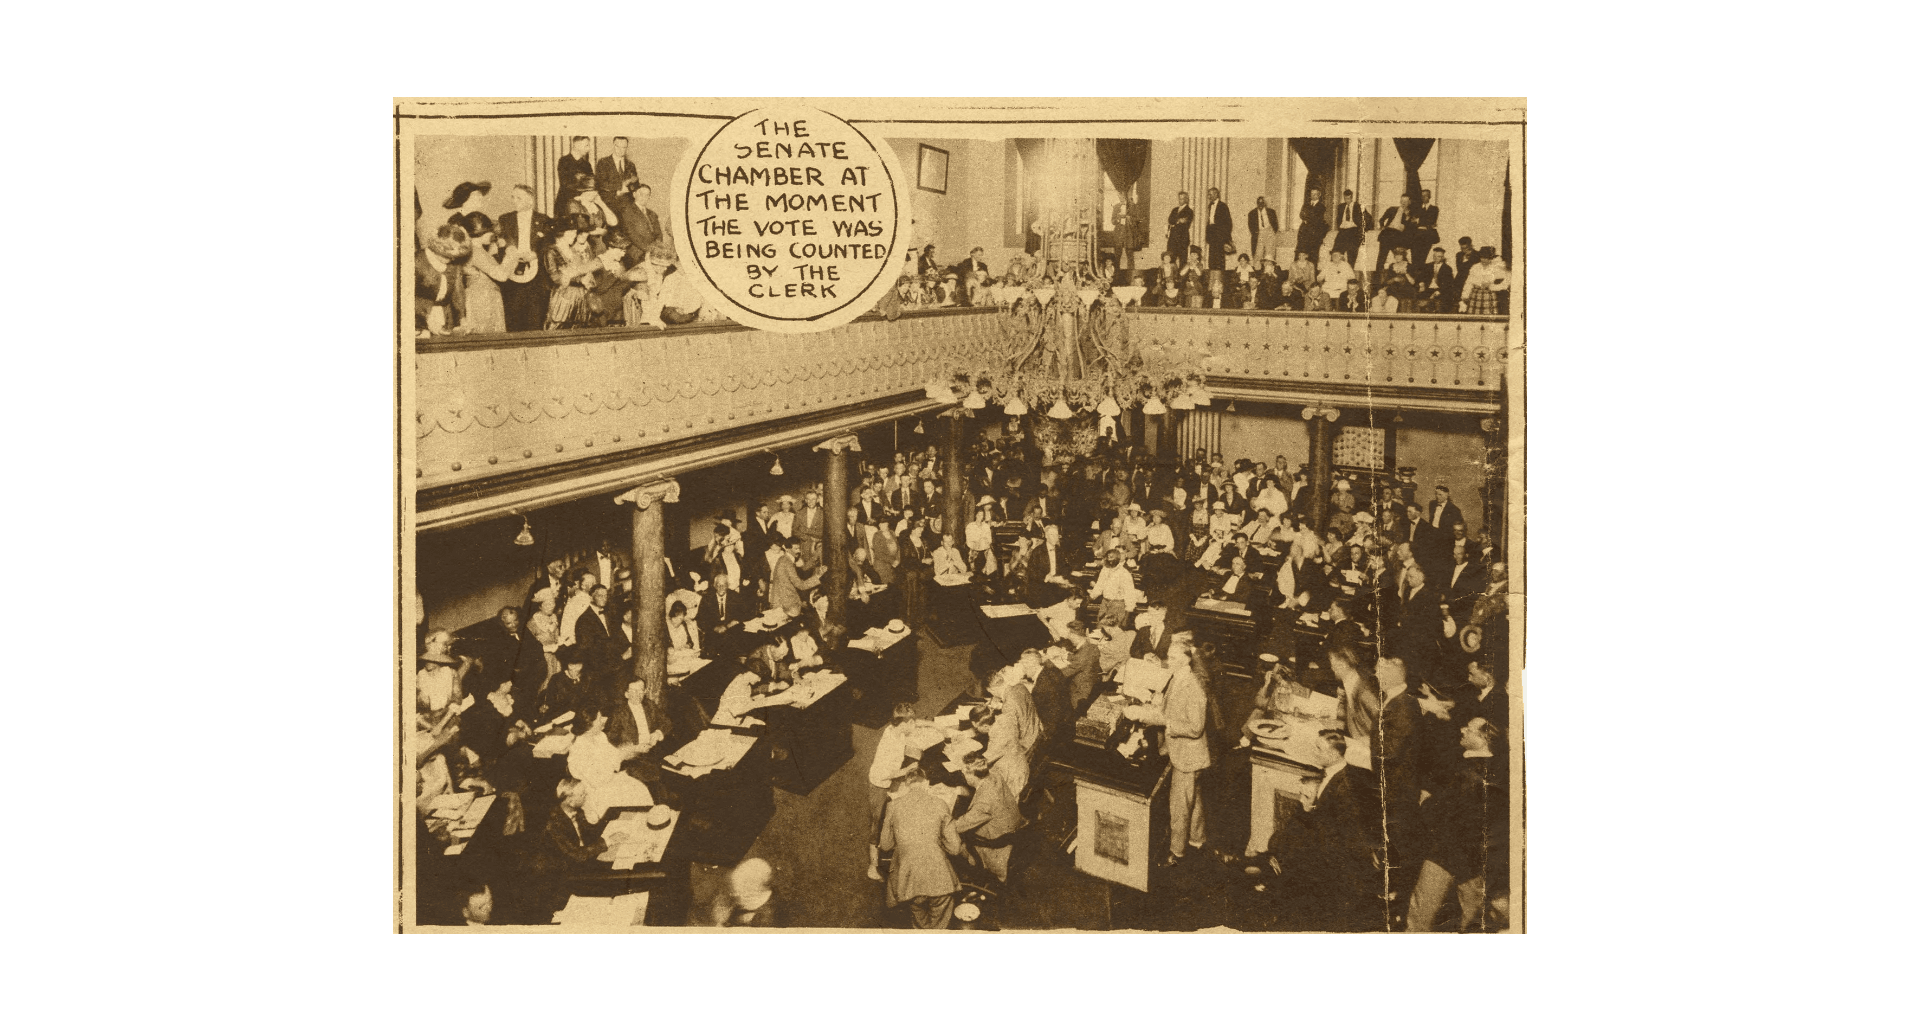 Suffrage vote scene